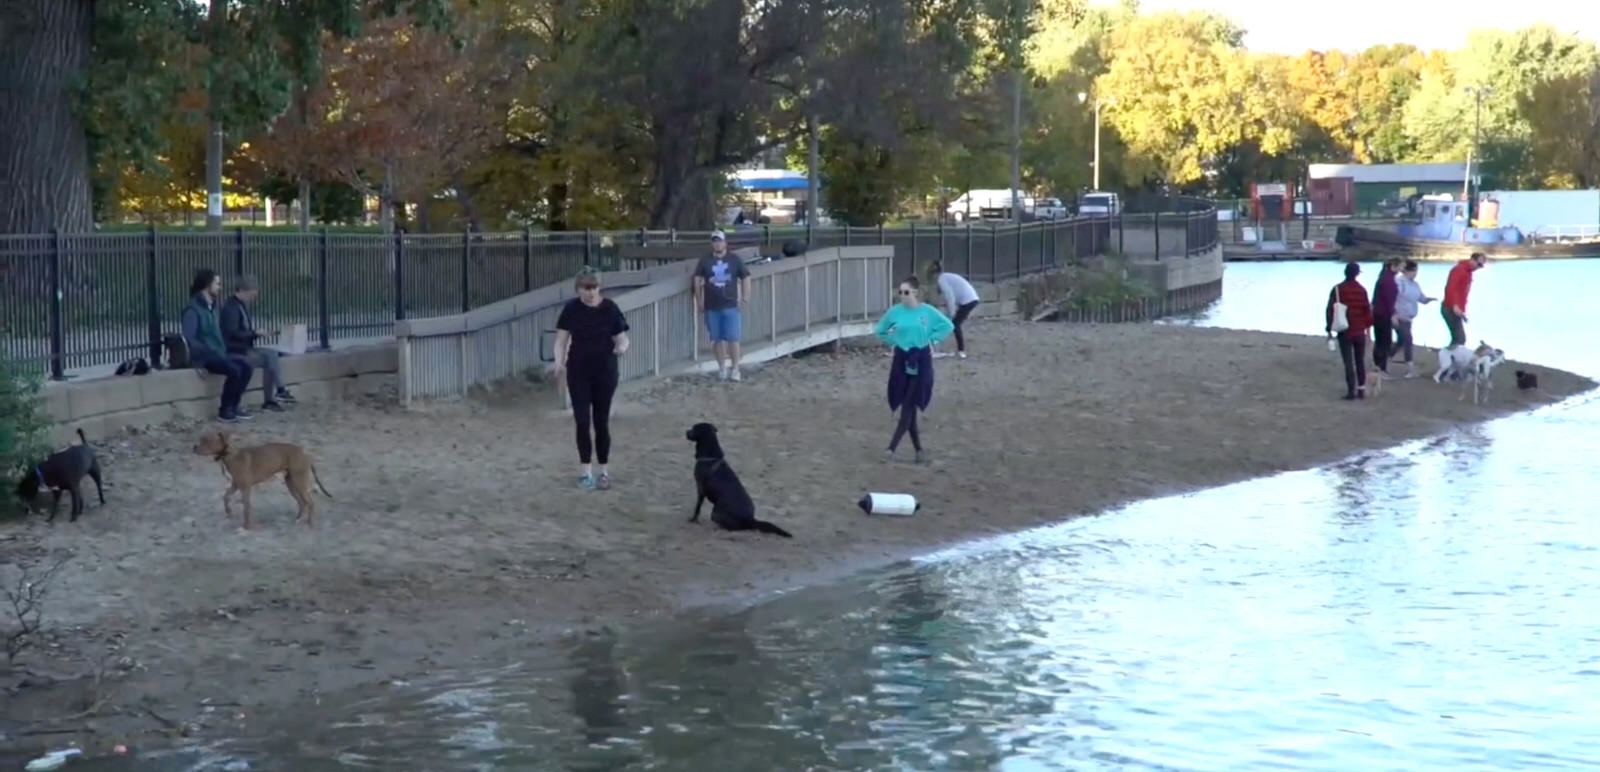 Chicago Dog Parks  Chicago Dog Park Guide From Windy City Paws - Map of chicago dog parks